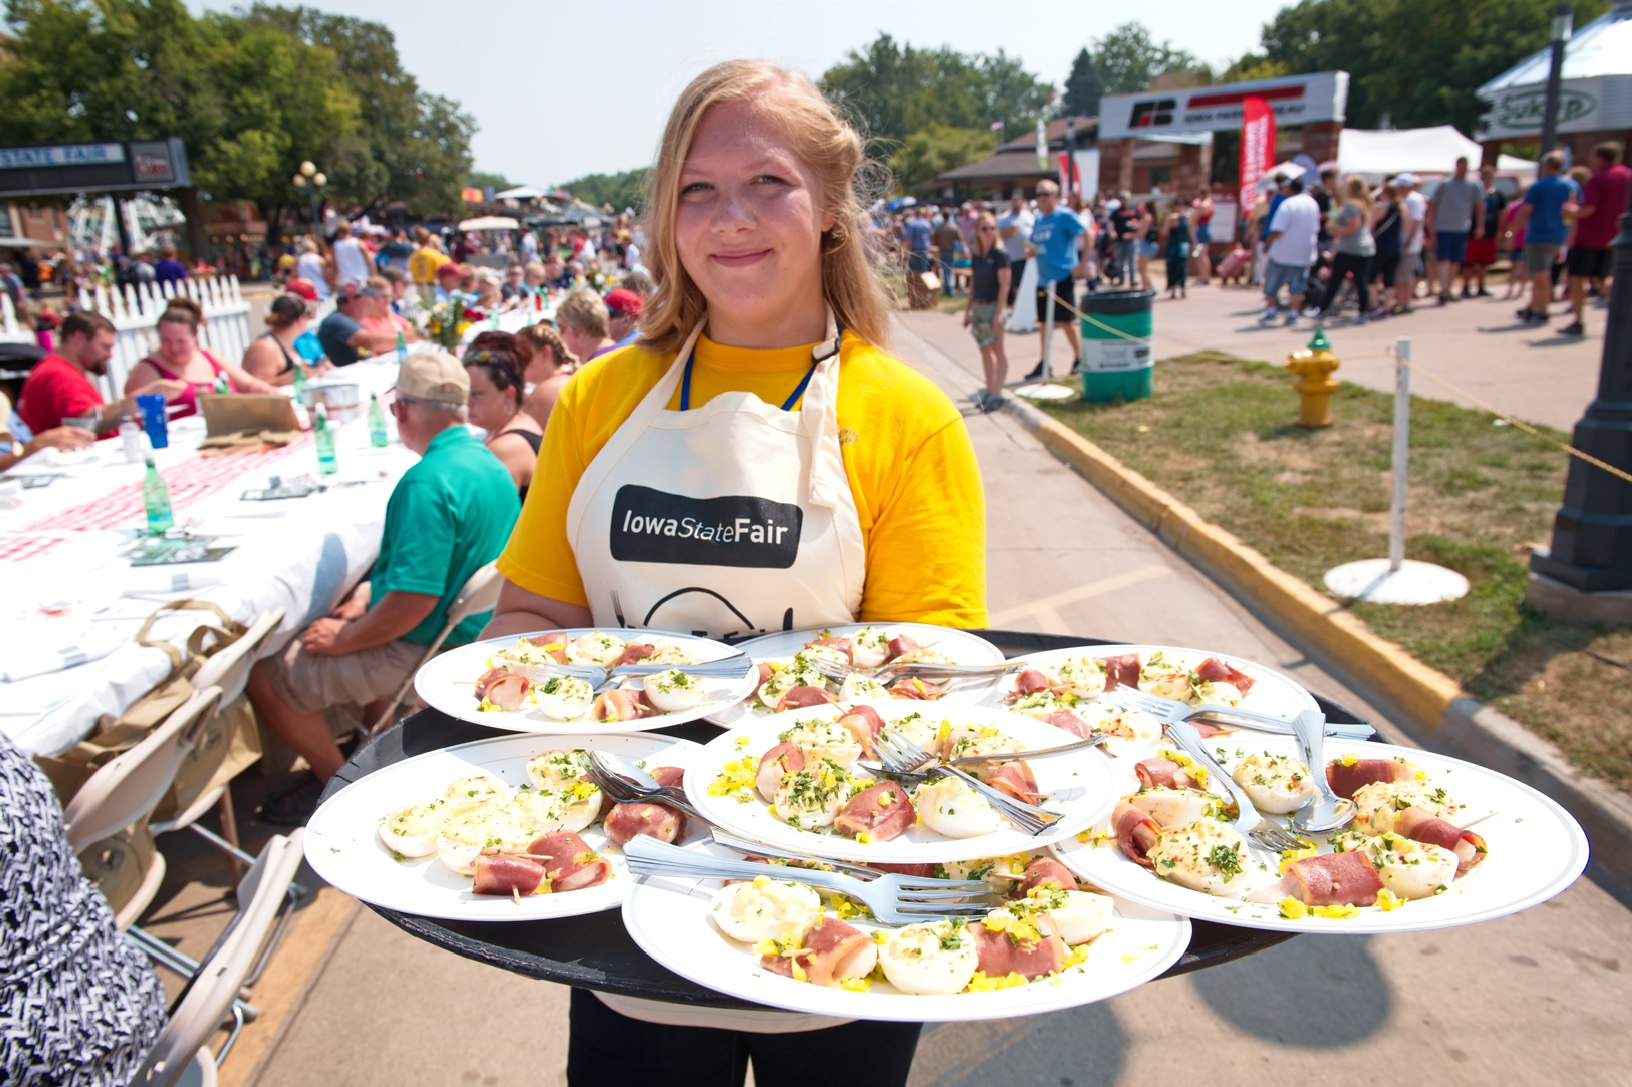 Hailey Bates, ACGC FFA, prepares to serve food to the participants of the first Farm to Table event at the Iowa State Fair. Bates and other FFA students helped serve the food that had ingredients from all of Iowa's commodity groups. Photo credit: Joseph L. Murphy/Iowa Soybean Association